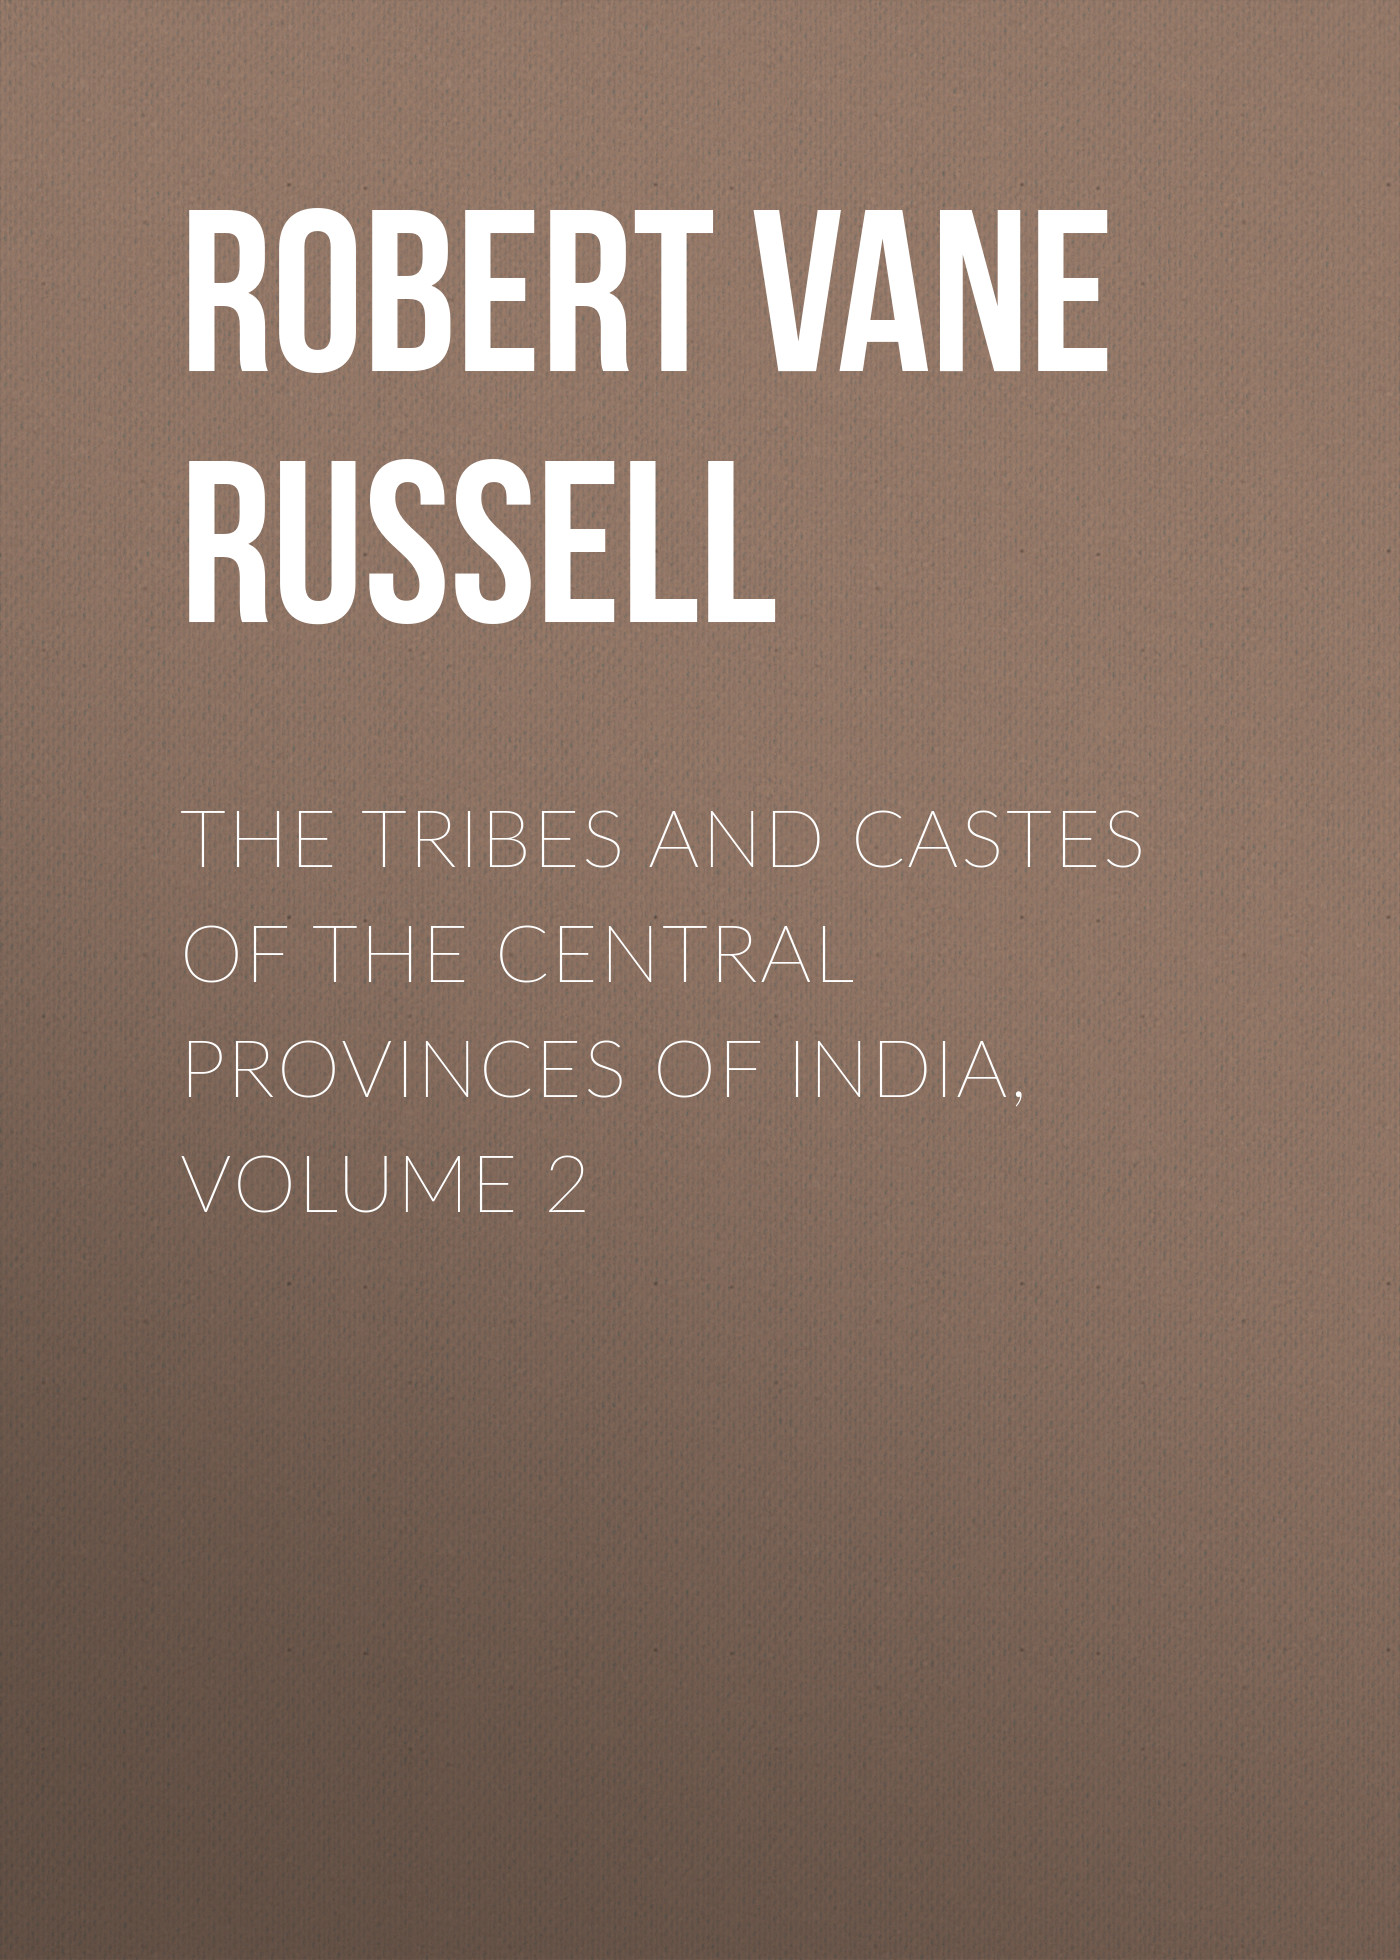 Robert Vane Russell The Tribes and Castes of the Central Provinces of India, Volume 2 robert vane russell the tribes and castes of the central provinces of india volume 3